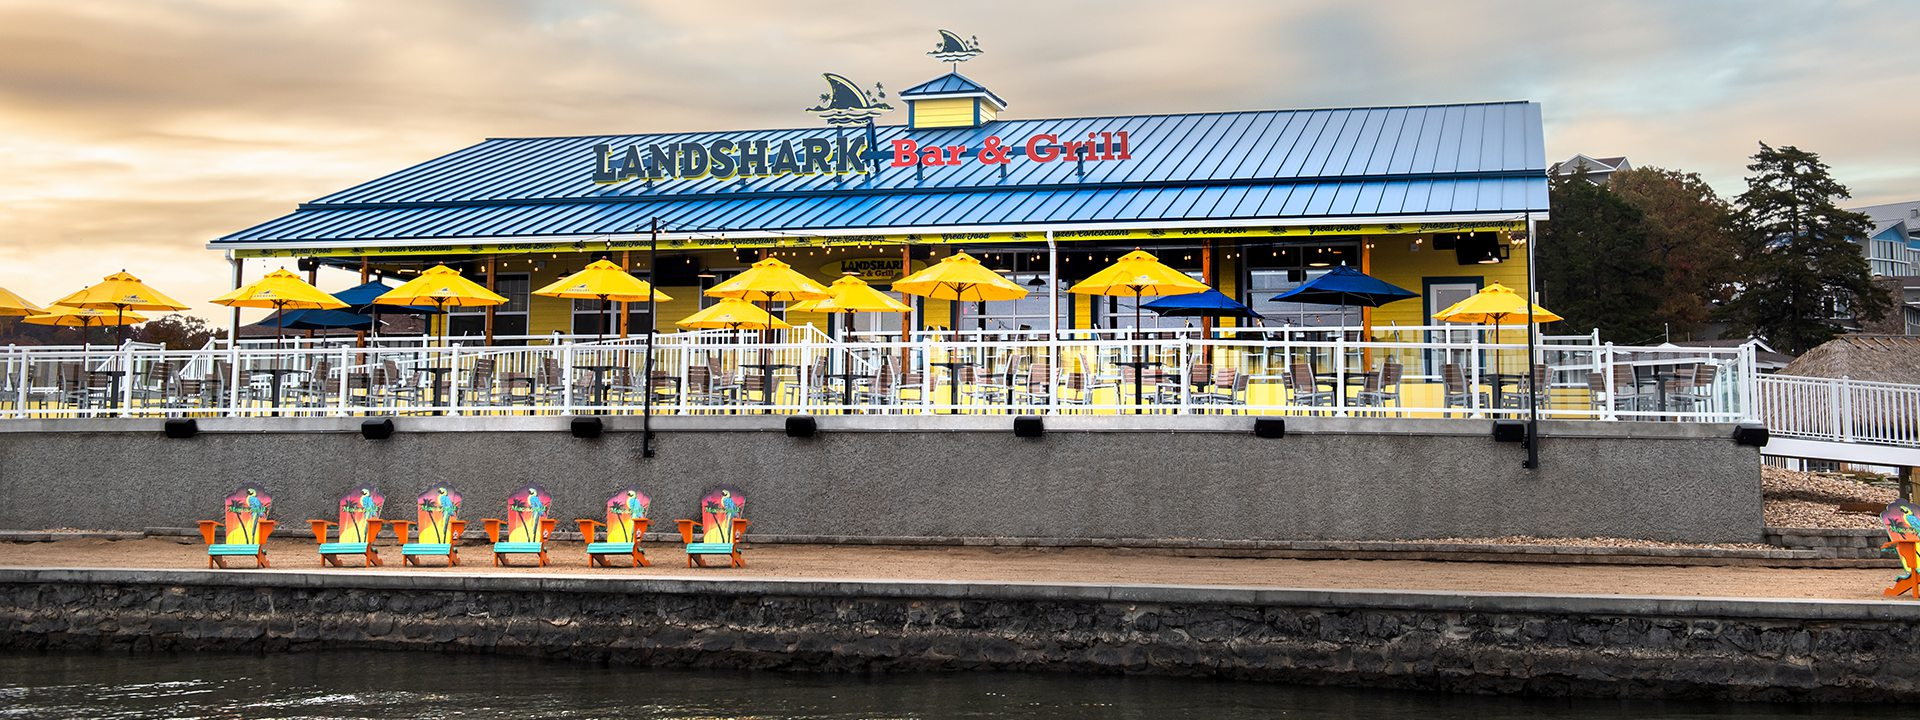 Imae of the LandShark Exterior with seating area